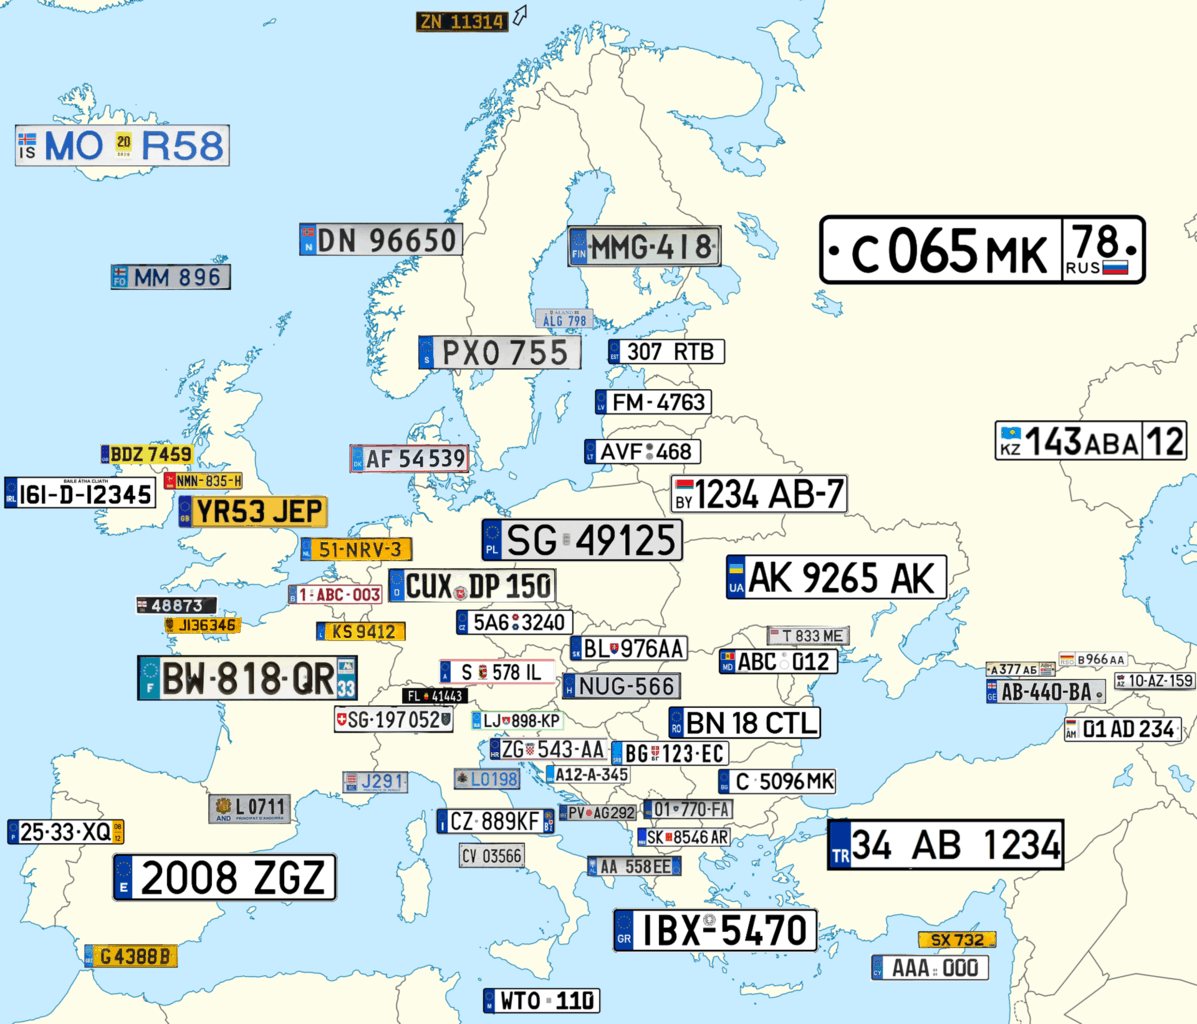 European License & Number Plate Designs